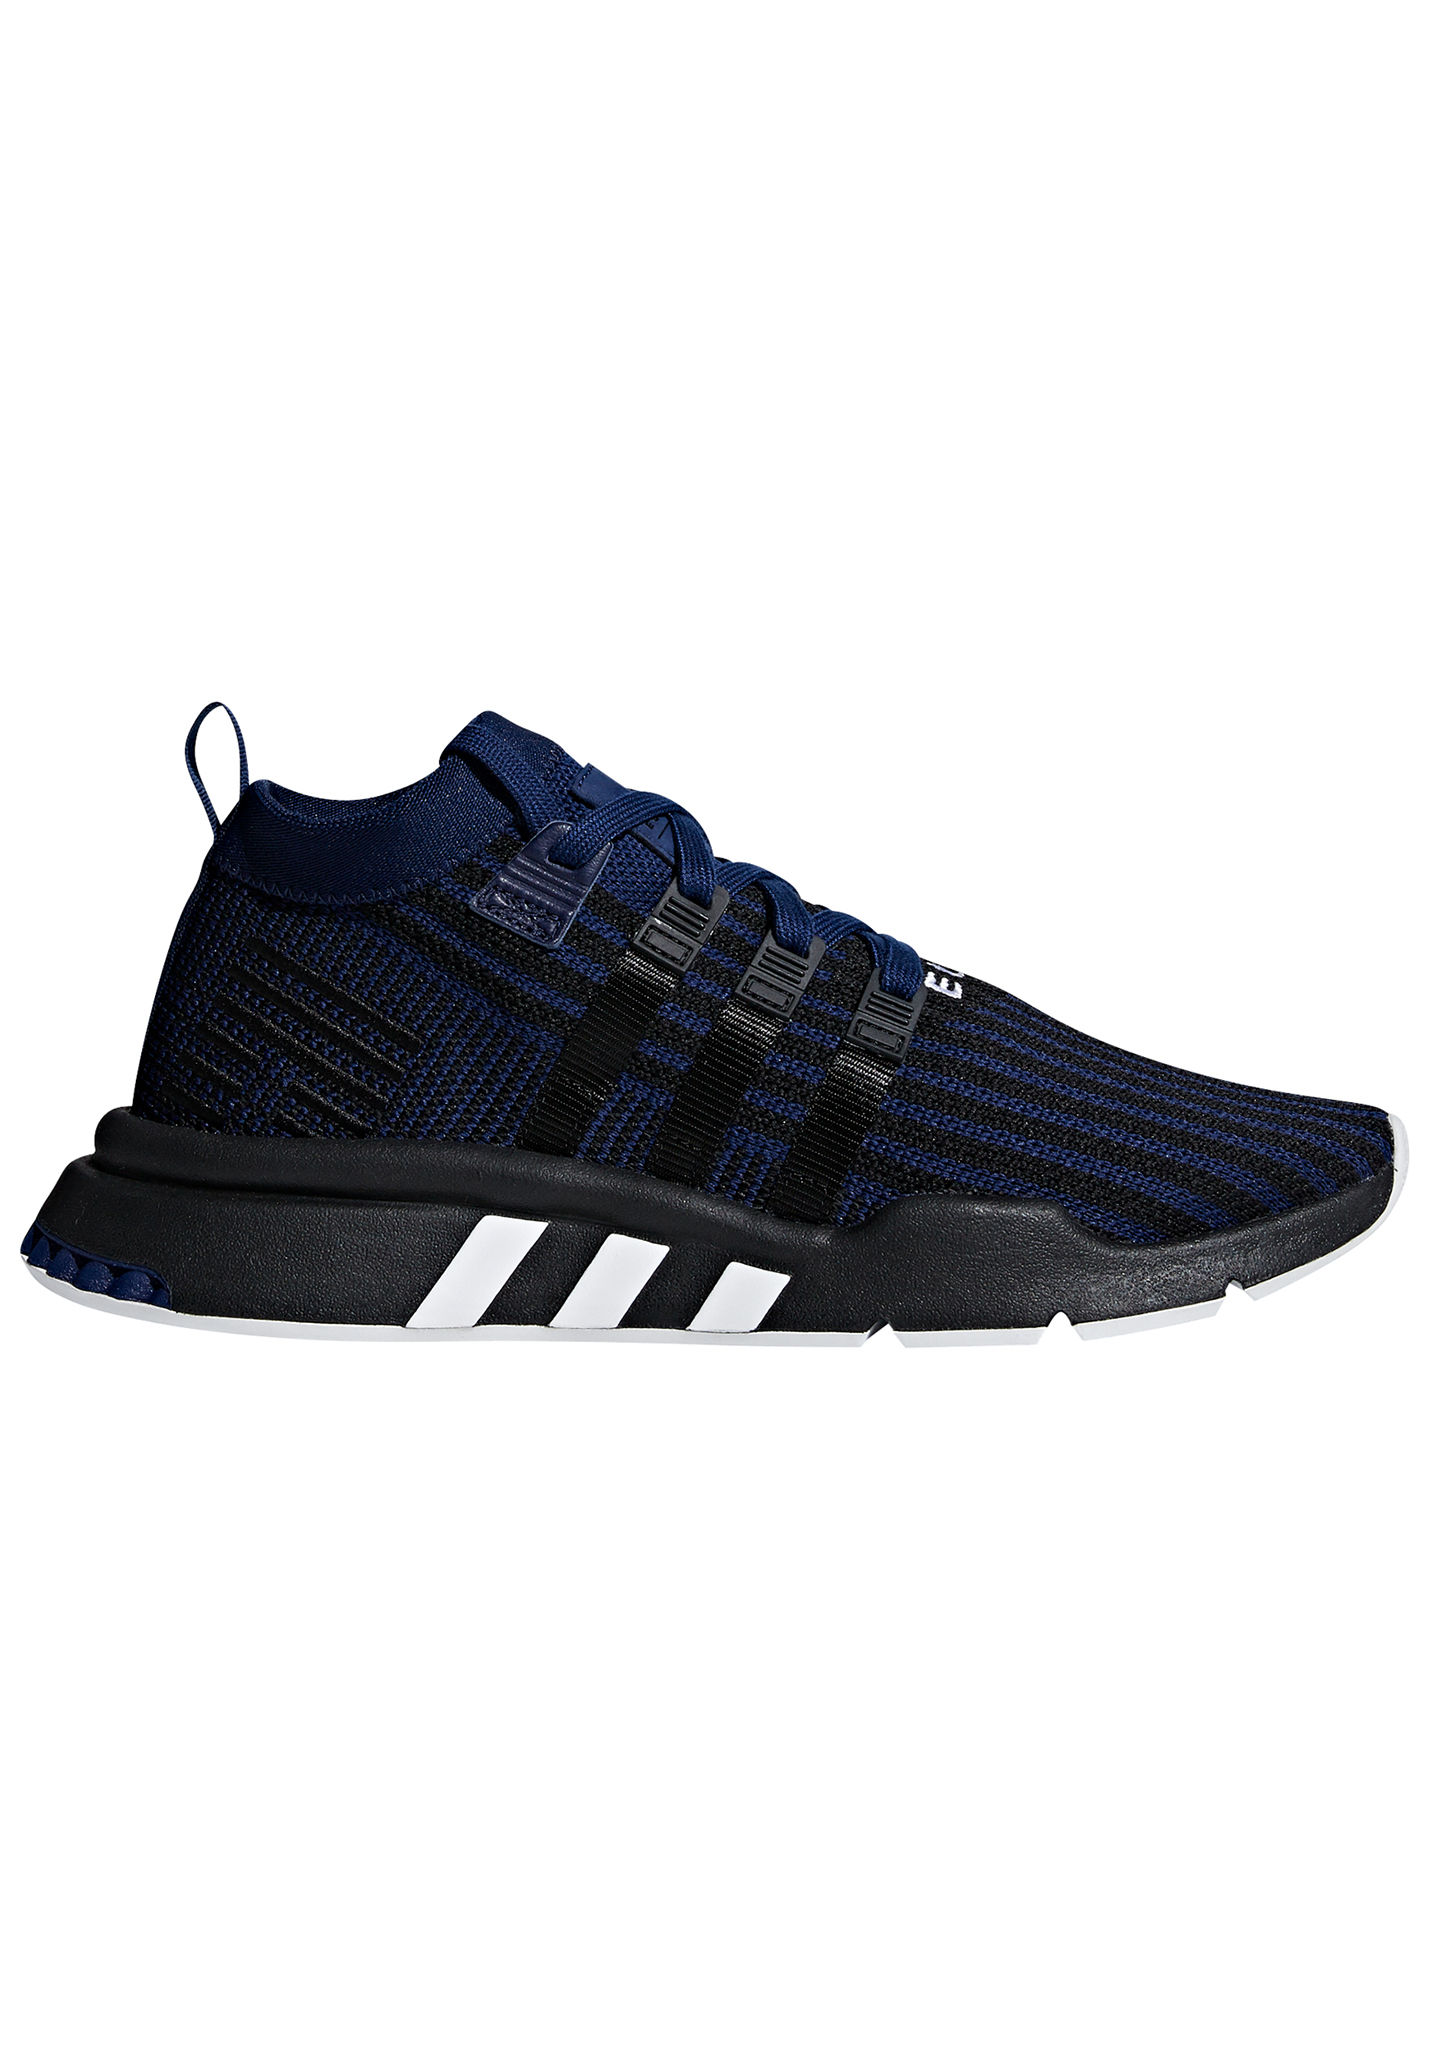 free shipping 678f6 0170d ADIDAS ORIGINALS EQT Support Mid ADV Pk - Sneakers voor Heren - Blauw -  Planet Sports